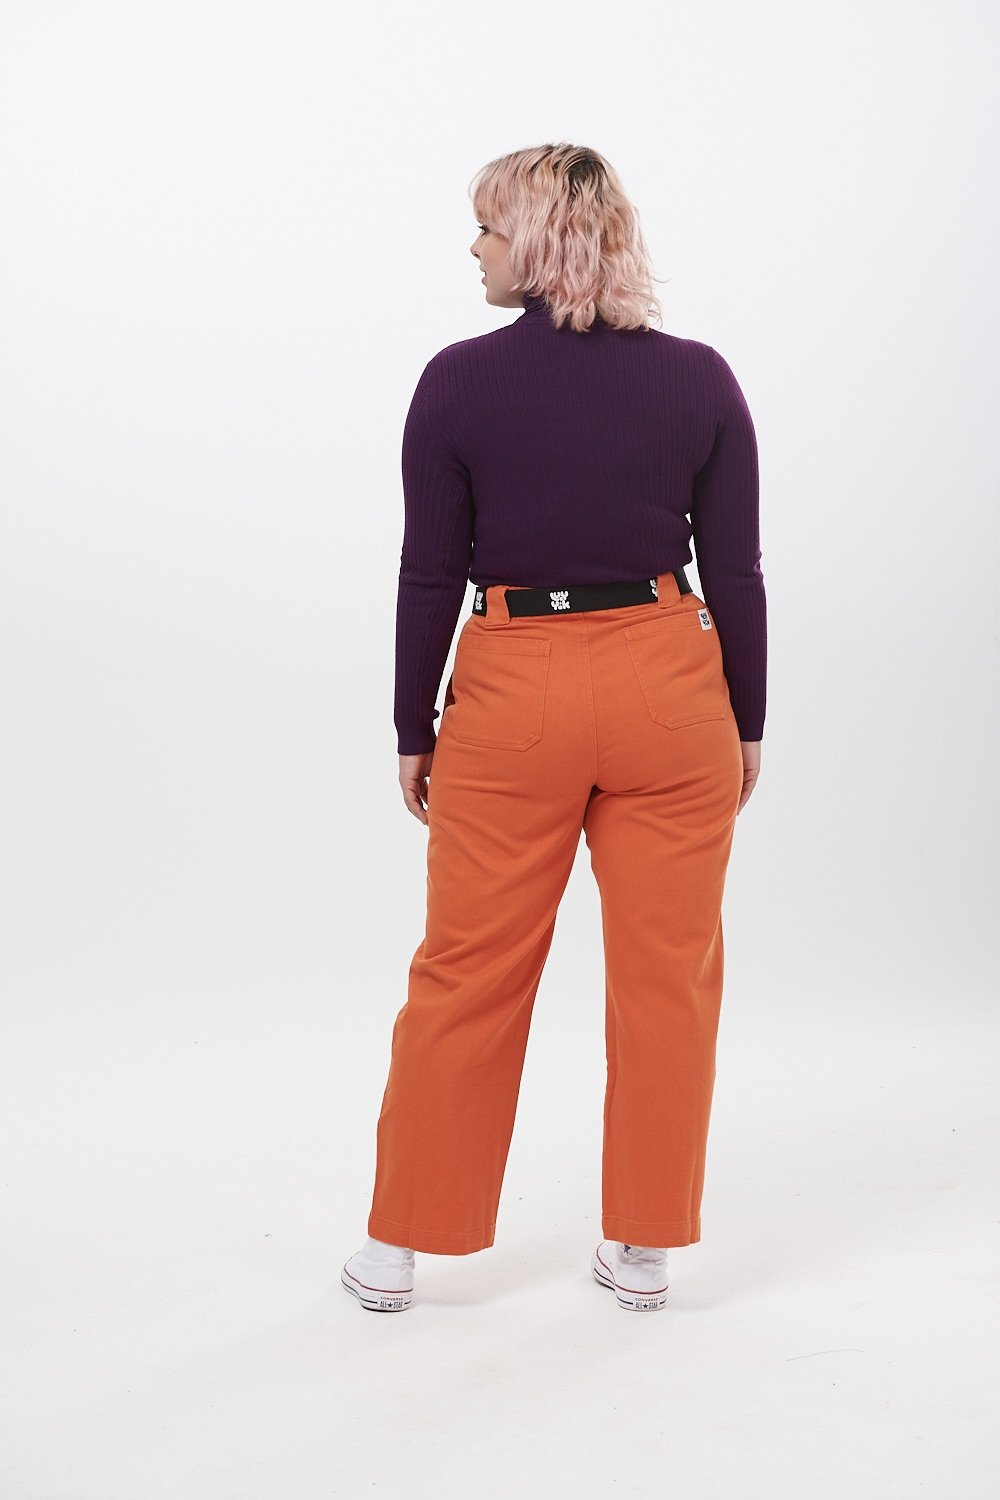 Lucy & Yak trousers 'Logan' High Rise Organic Jeans in Rust